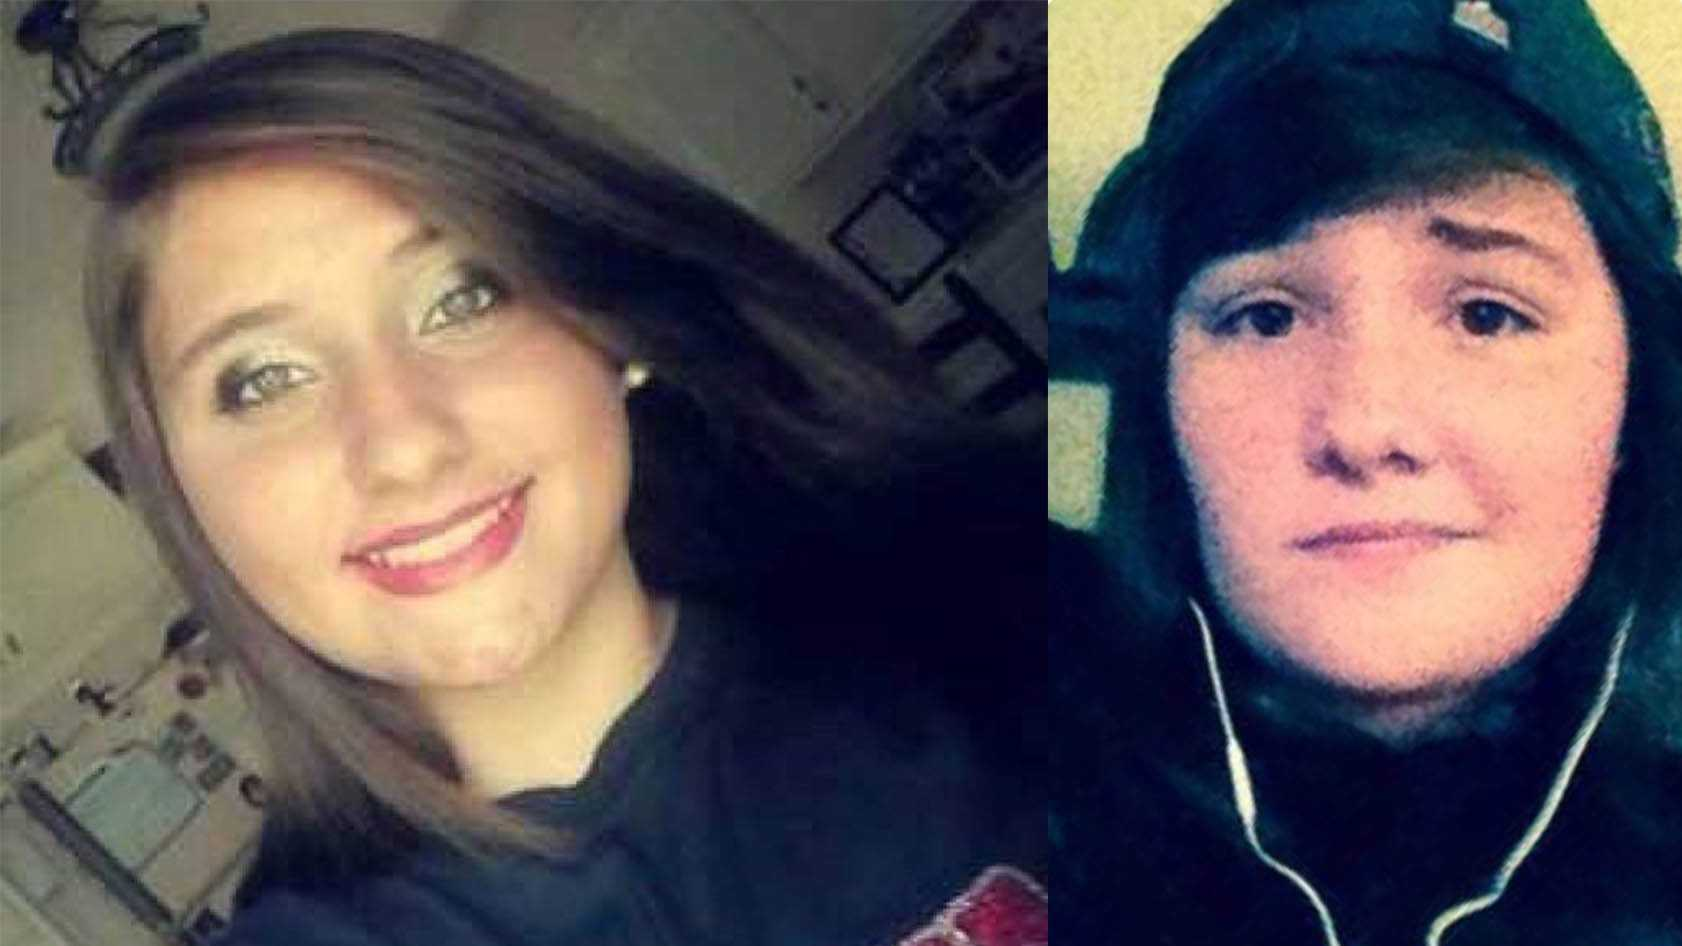 The Etowah County Sheriff's Office and Crossville police are searching for two missing teens. Brooke Anette Richerzhagen, 15, of Attalla, and Stephanie Michelle Siemens, 16, of Crossville, were last seen Wednesday evening in Gallant.